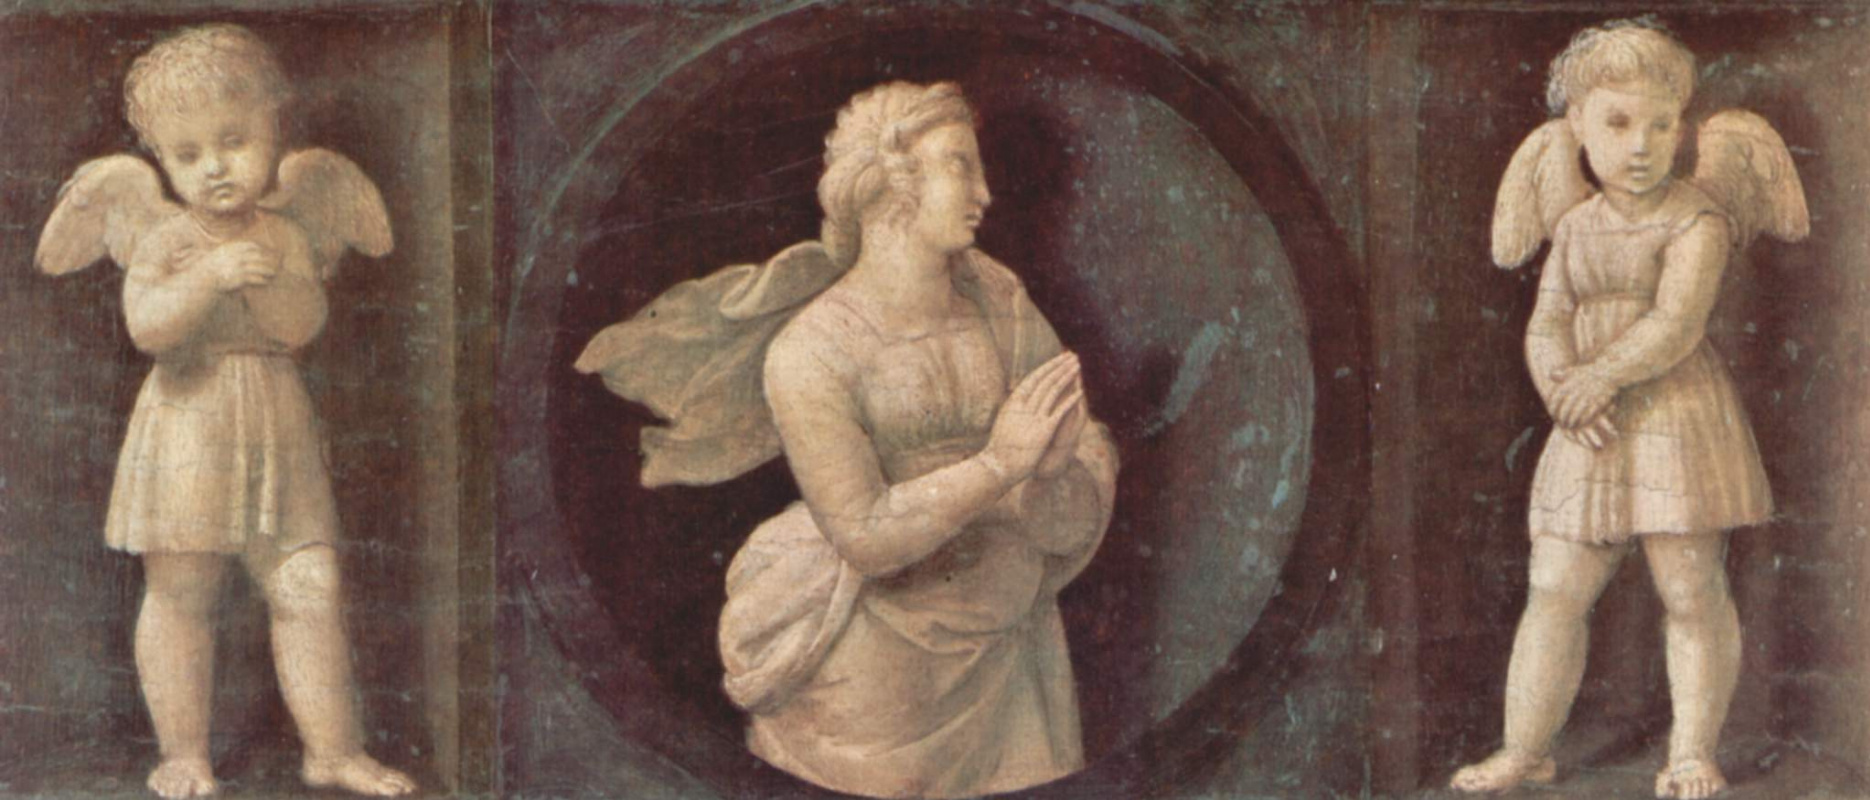 Raphael Sanzio. The altar of baloni, Central part, predella with images of the cardinal virtues. Faith and two angels